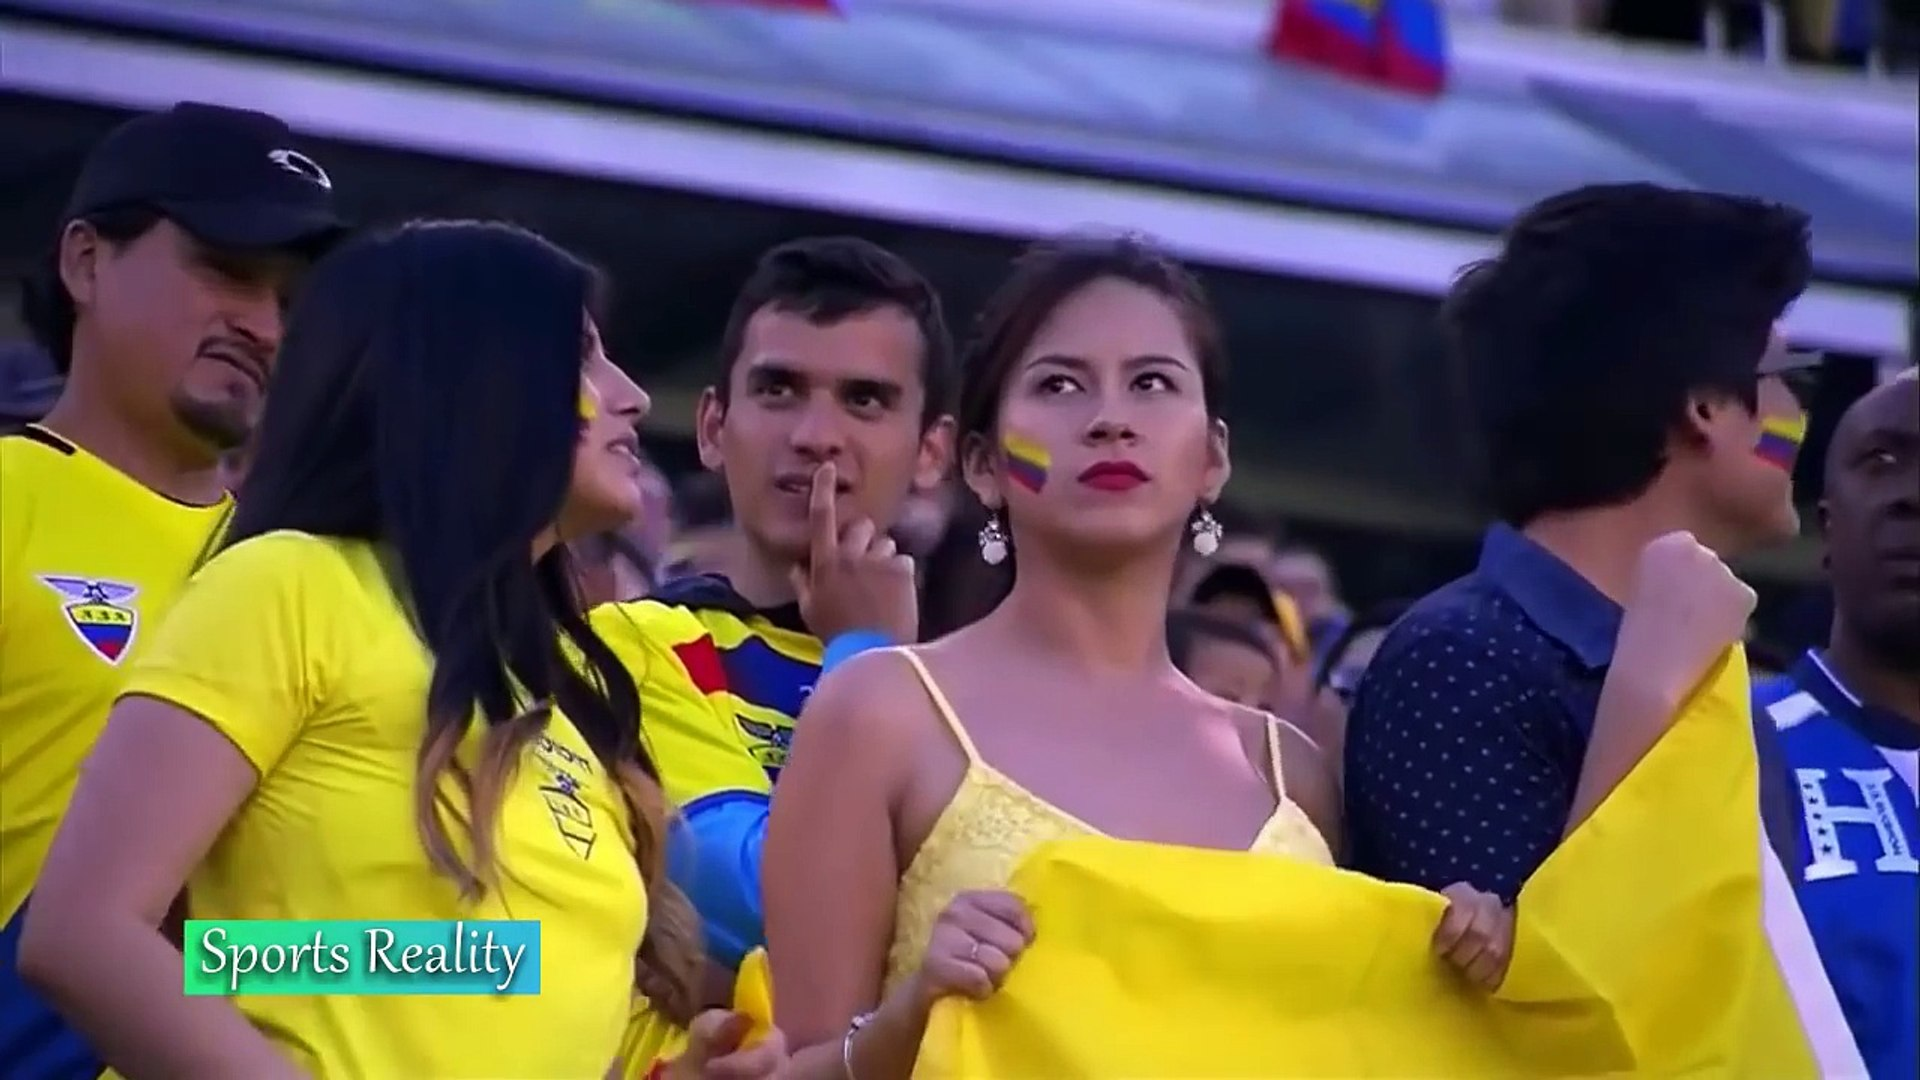 Sexy Cricket ❤ Soccer Funny Fans Video❤ Sexy Soccer Fans - Cricket Funny Fans - Sports Reality